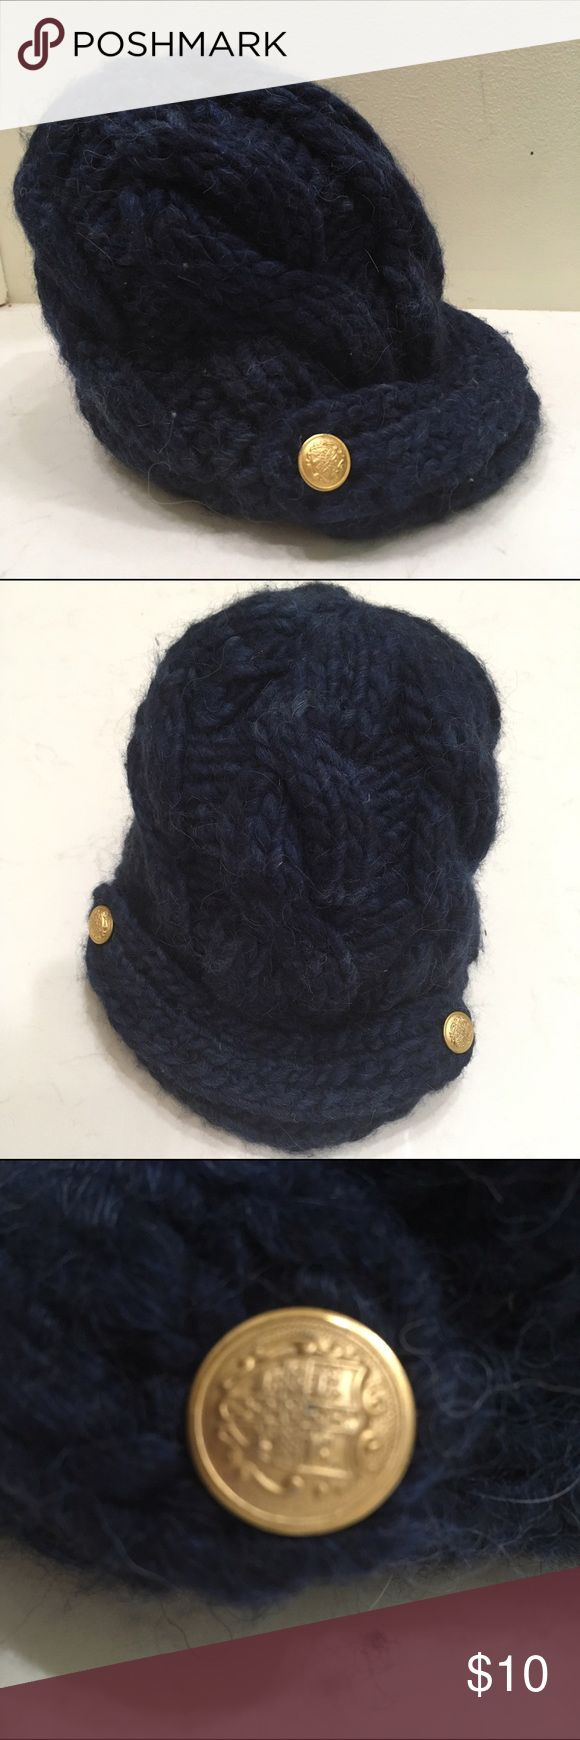 NAVY CABLE KNIT HAT. SMALL FORWARD BRIM. X SMALL. XS TIGHT FITTING ADULT HAT OR KIDS HAT. SMALL FORWARD BRIM WITH GOLD BUTTONS. CHUNKY CABLE KNIT DESIGN. NAVY. PREVIOUSLY OWNED. Accessories Hats